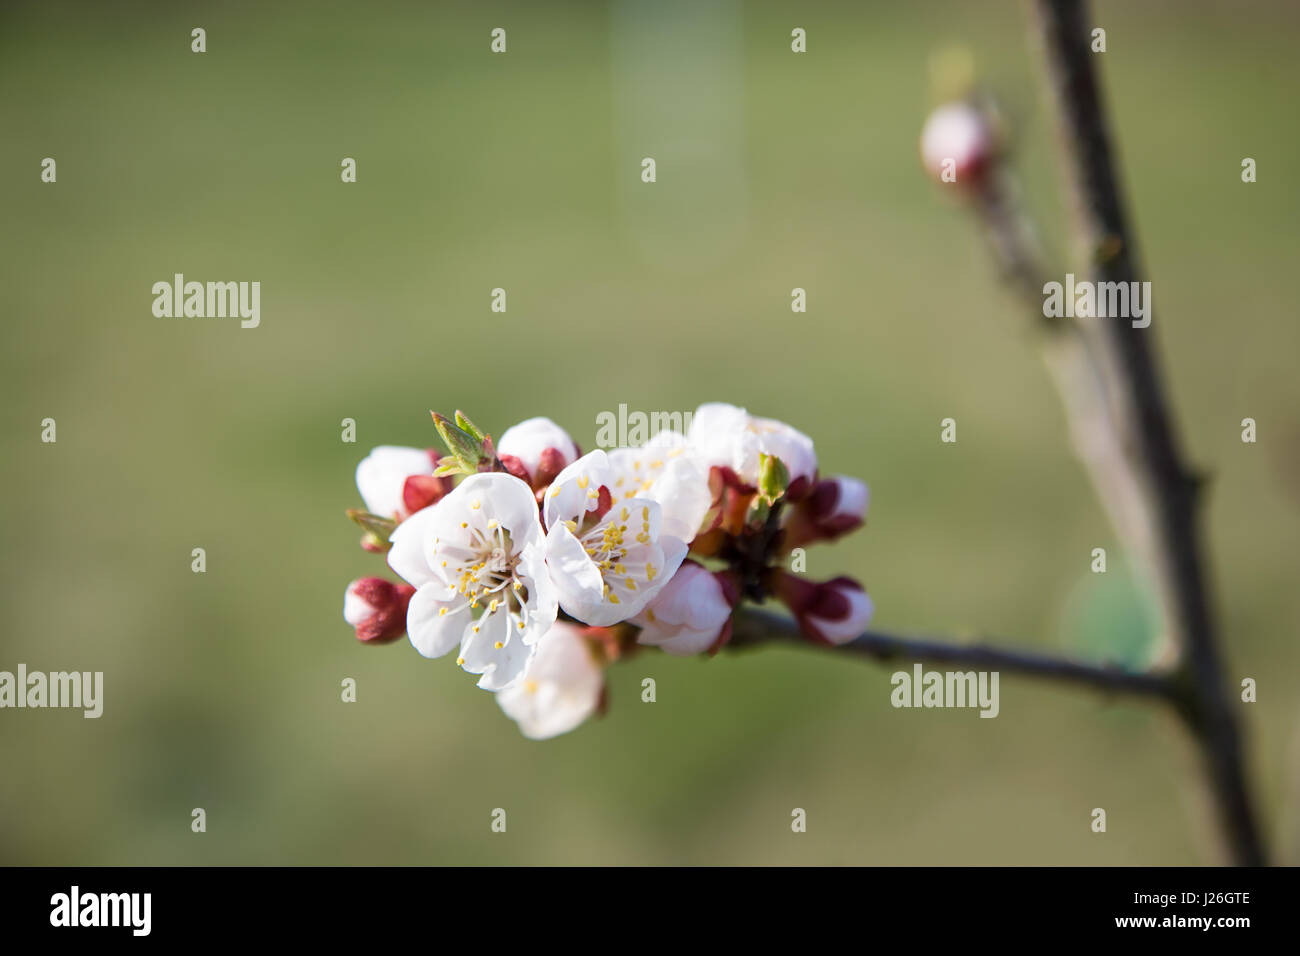 tulip and springtime blossom - Stock Image